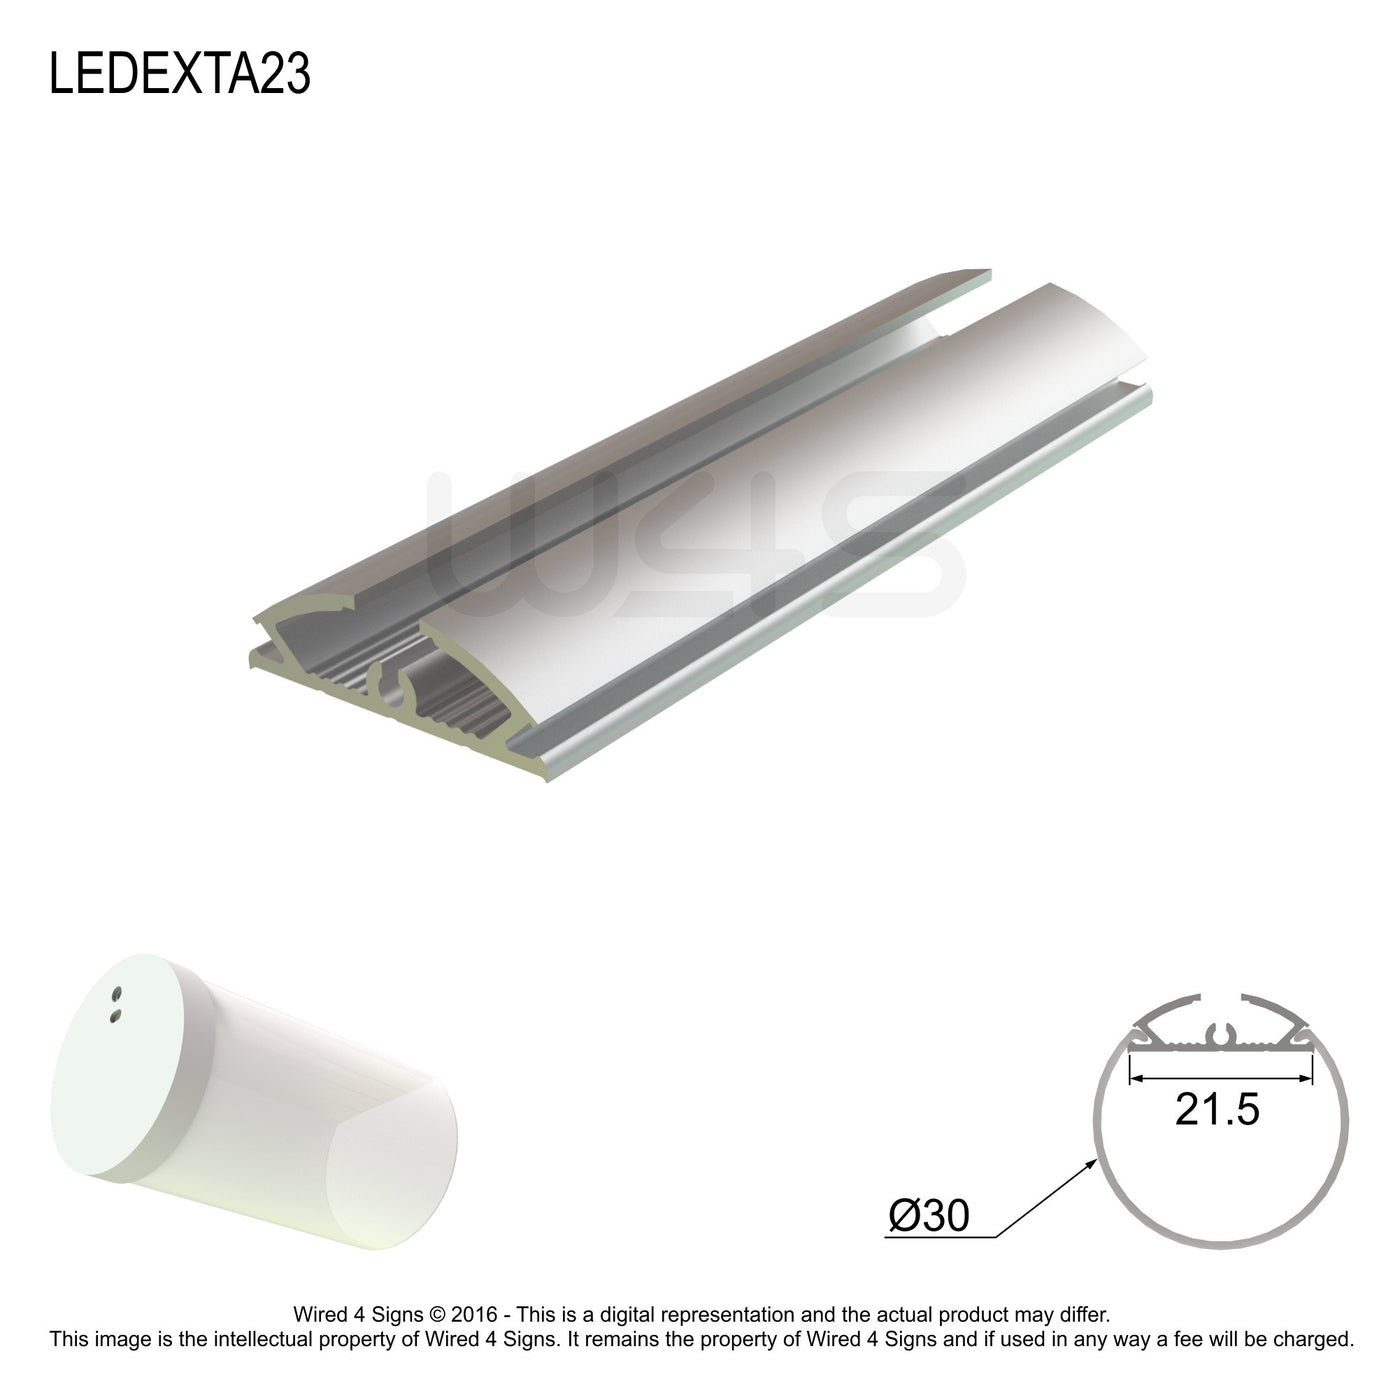 LED Profile A23